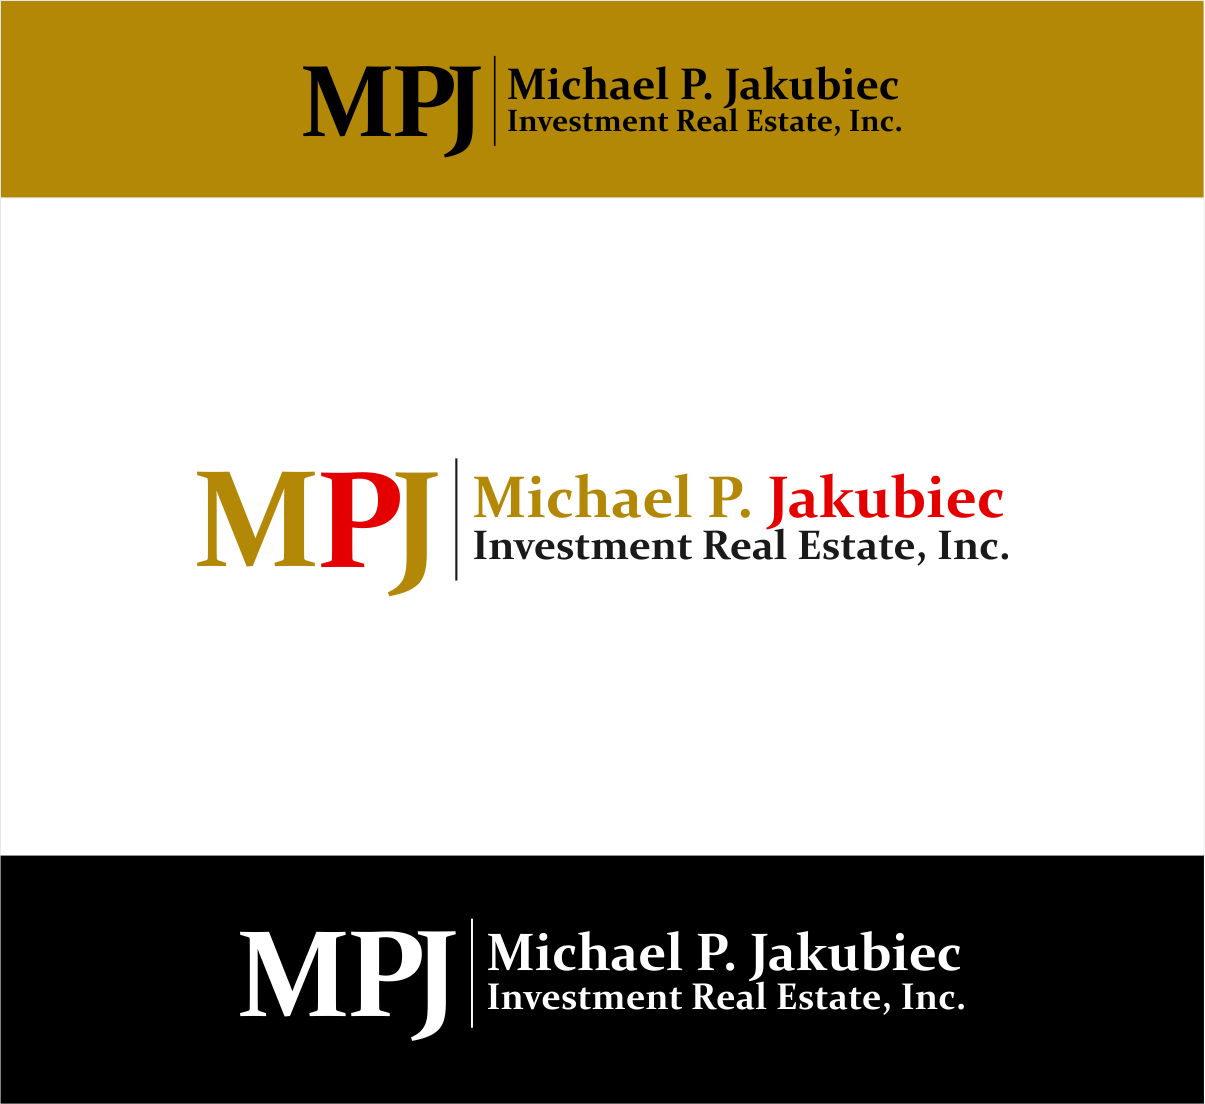 Logo Design by haidu - Entry No. 22 in the Logo Design Contest New Logo Design for Michael P. Jakubiec Investment Real Estate, Inc..